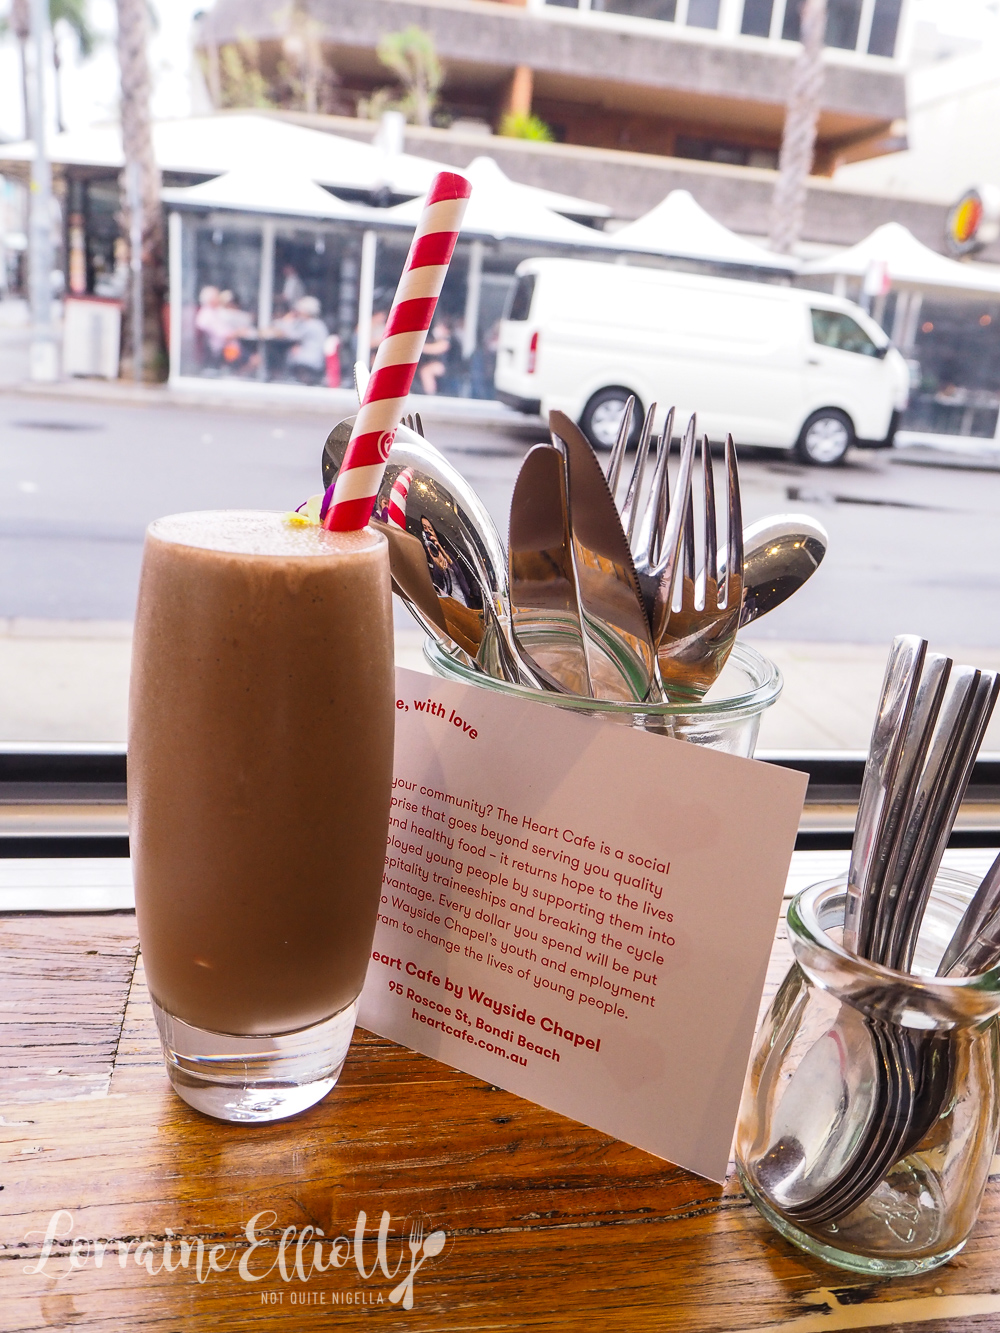 Heart Cafe, Bondi Beach